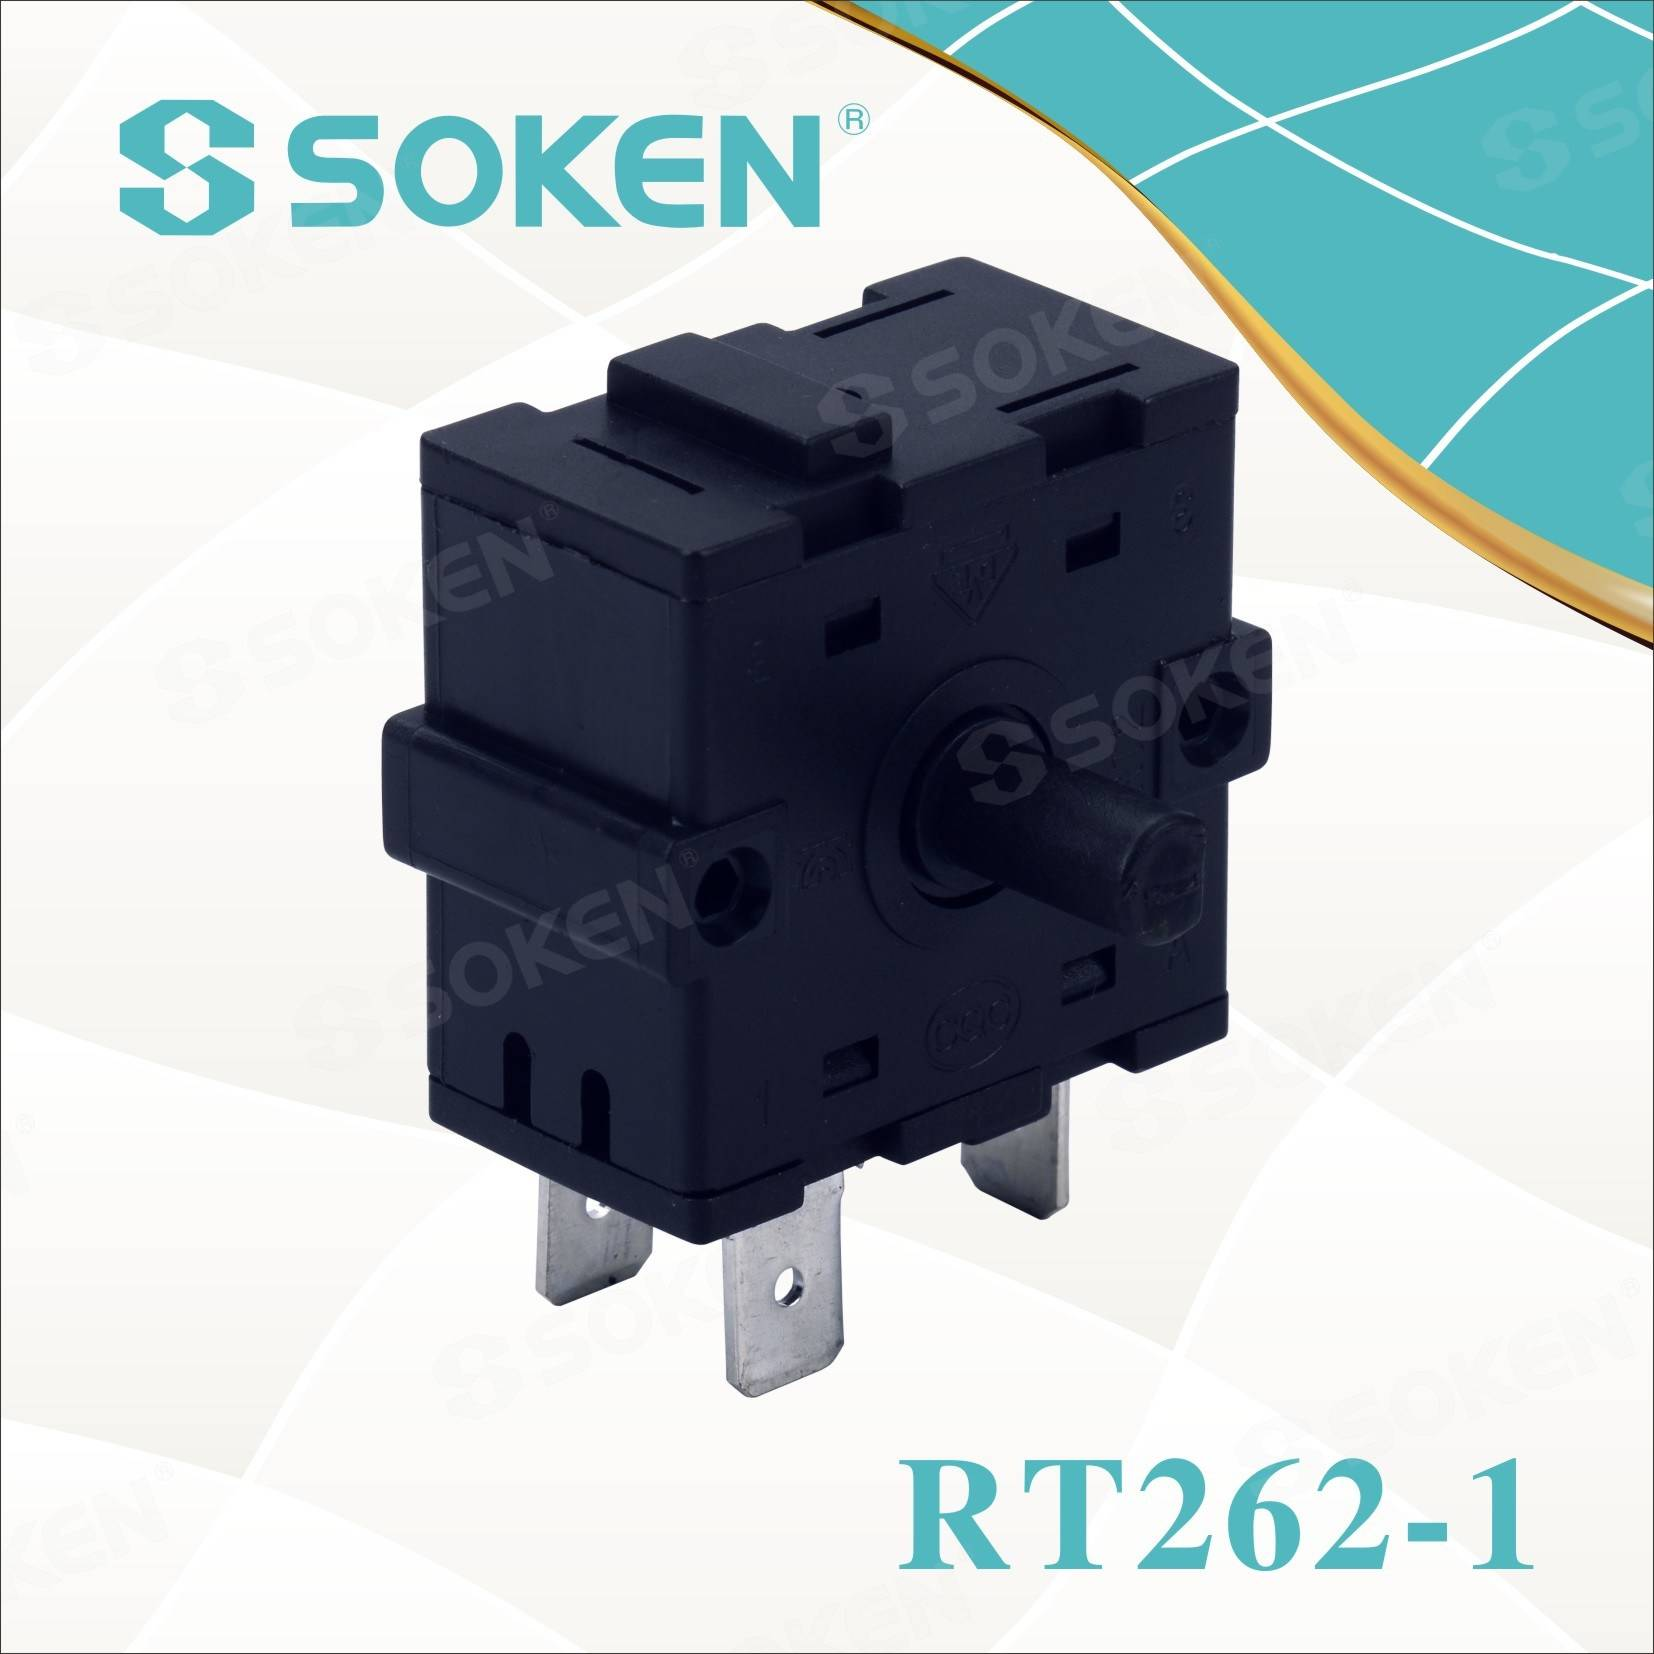 Soken Rotary Switch voor Blender